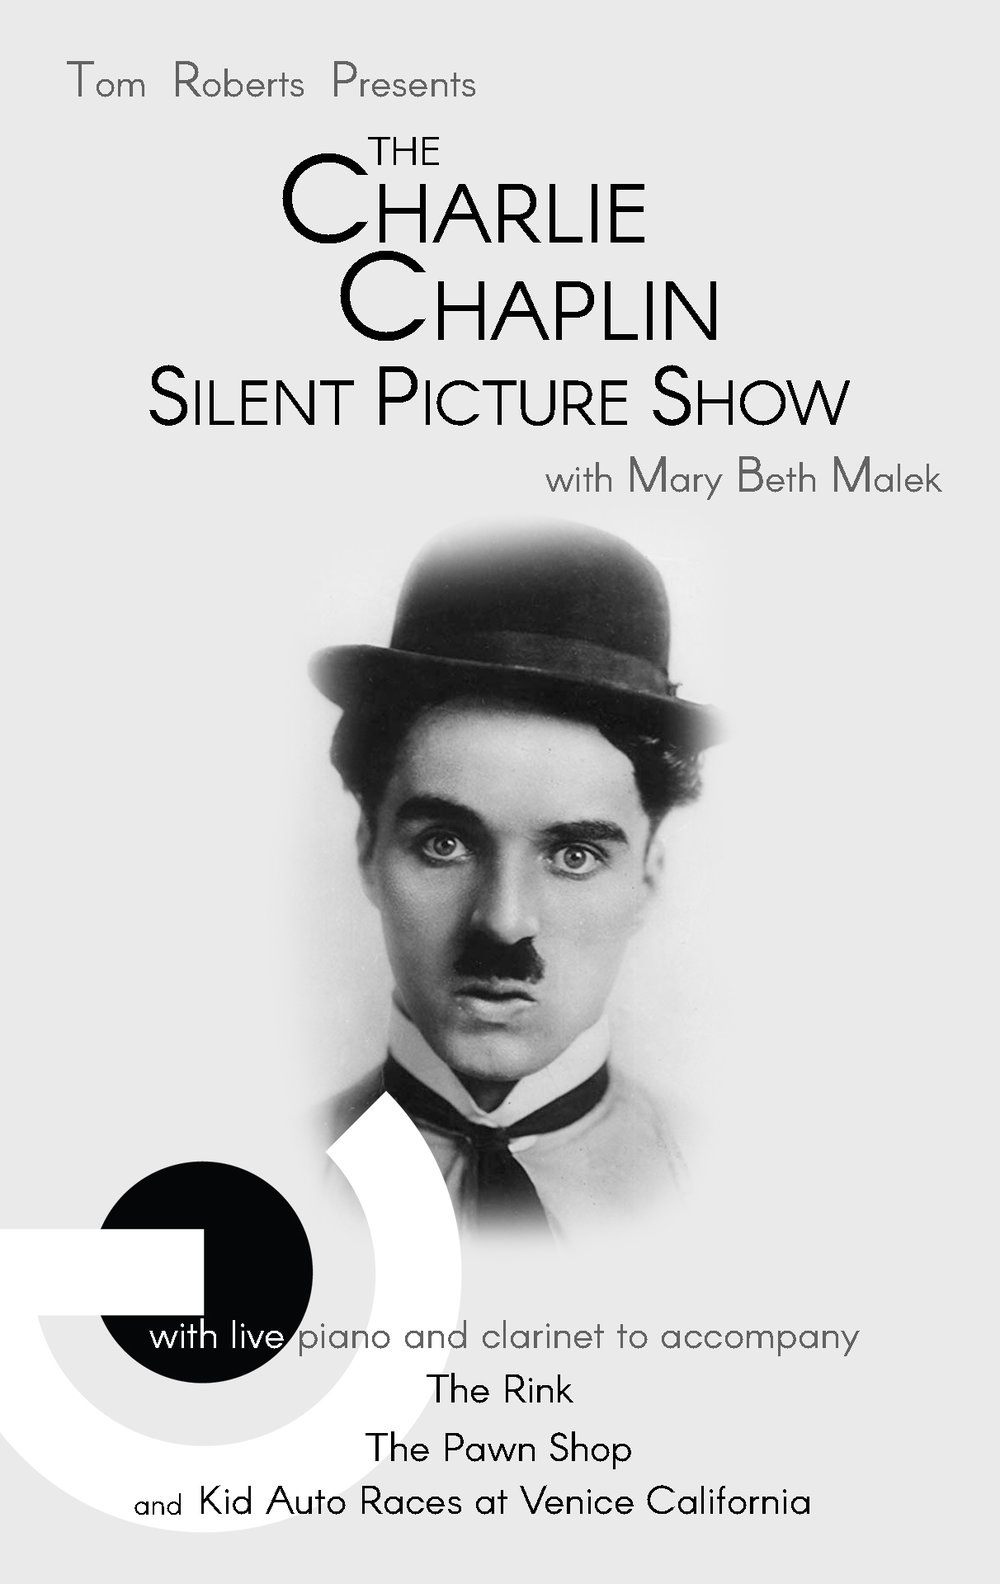 The Charlie Chaplin Silent Picture Show with Tom Roberts and Mary Beth Malek